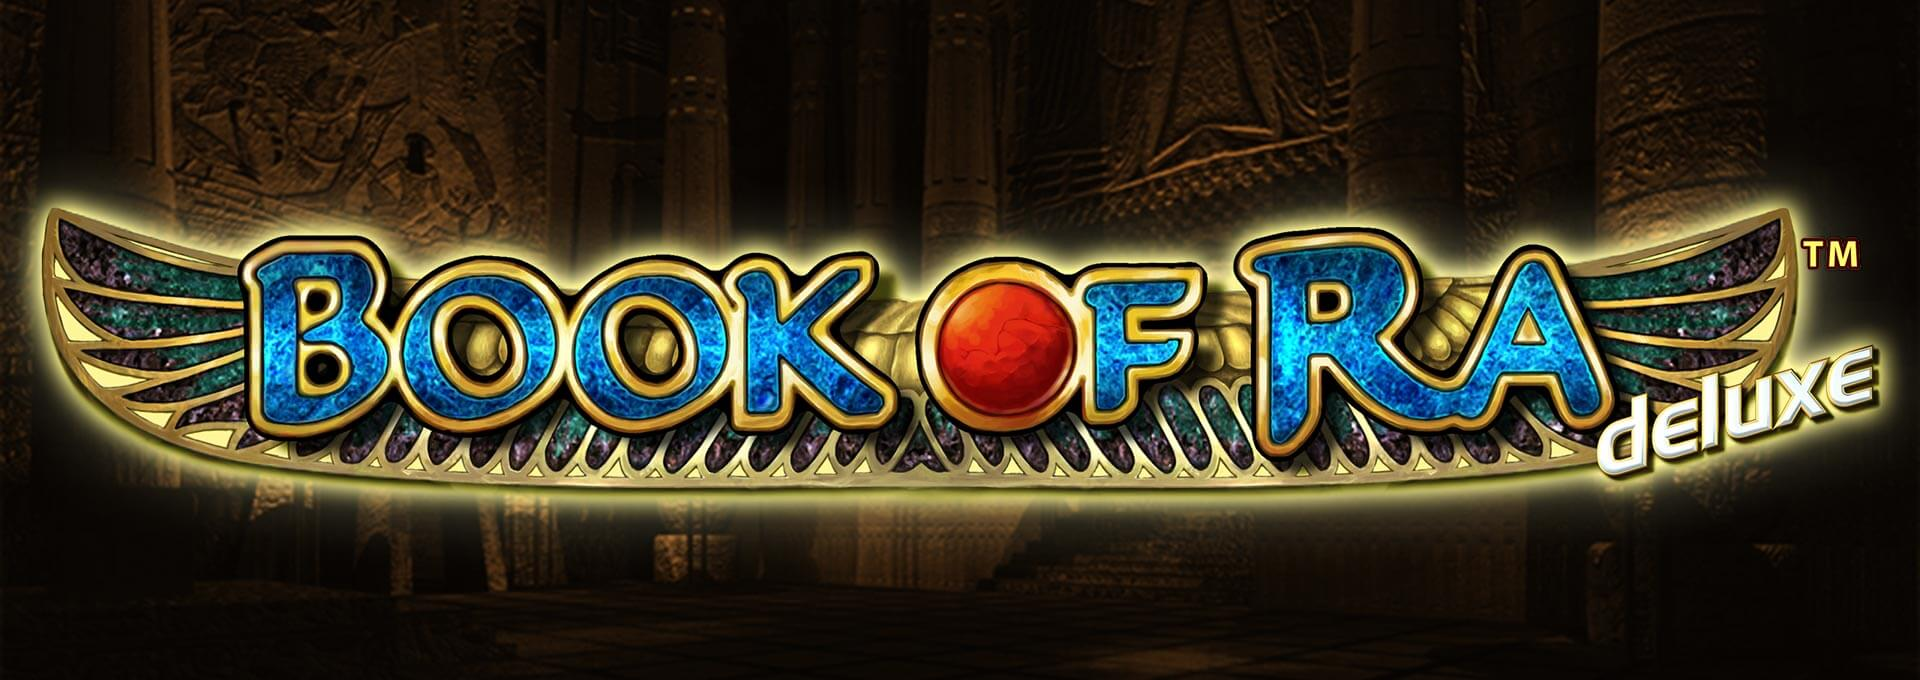 online casino websites book of ra deluxe